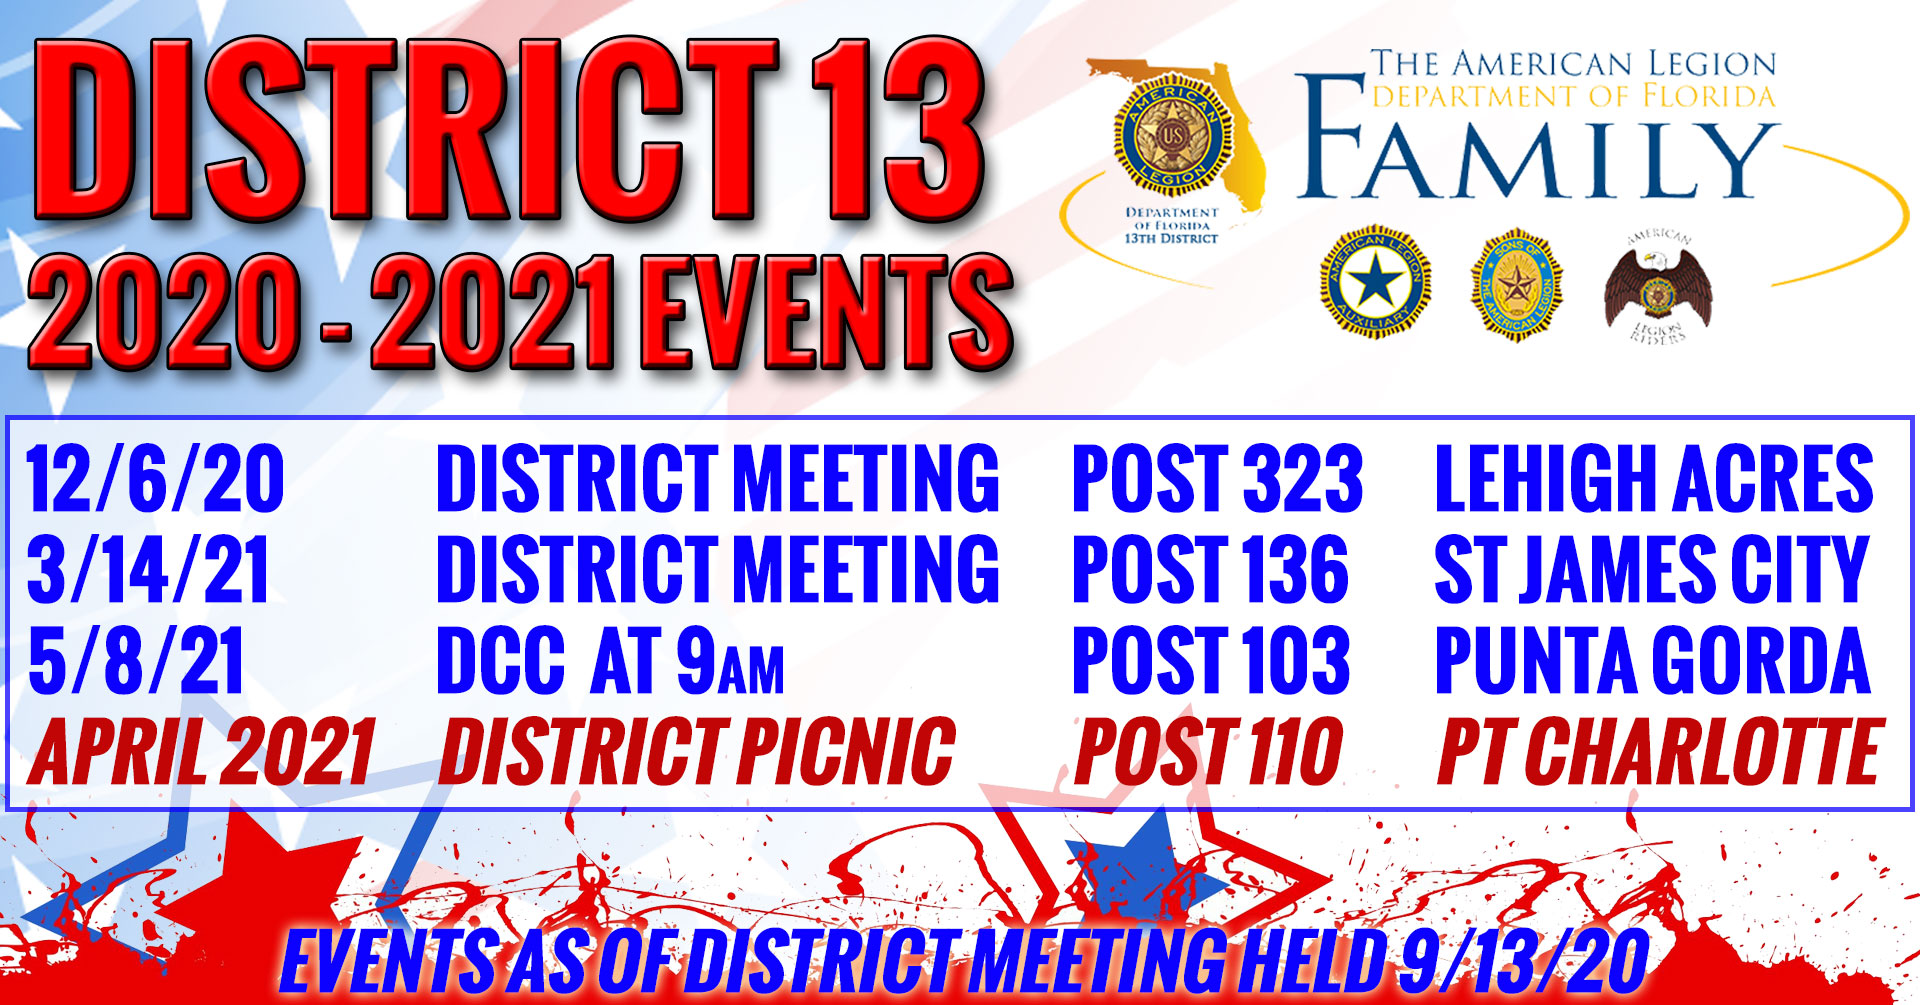 2020-2021 District 13 Events